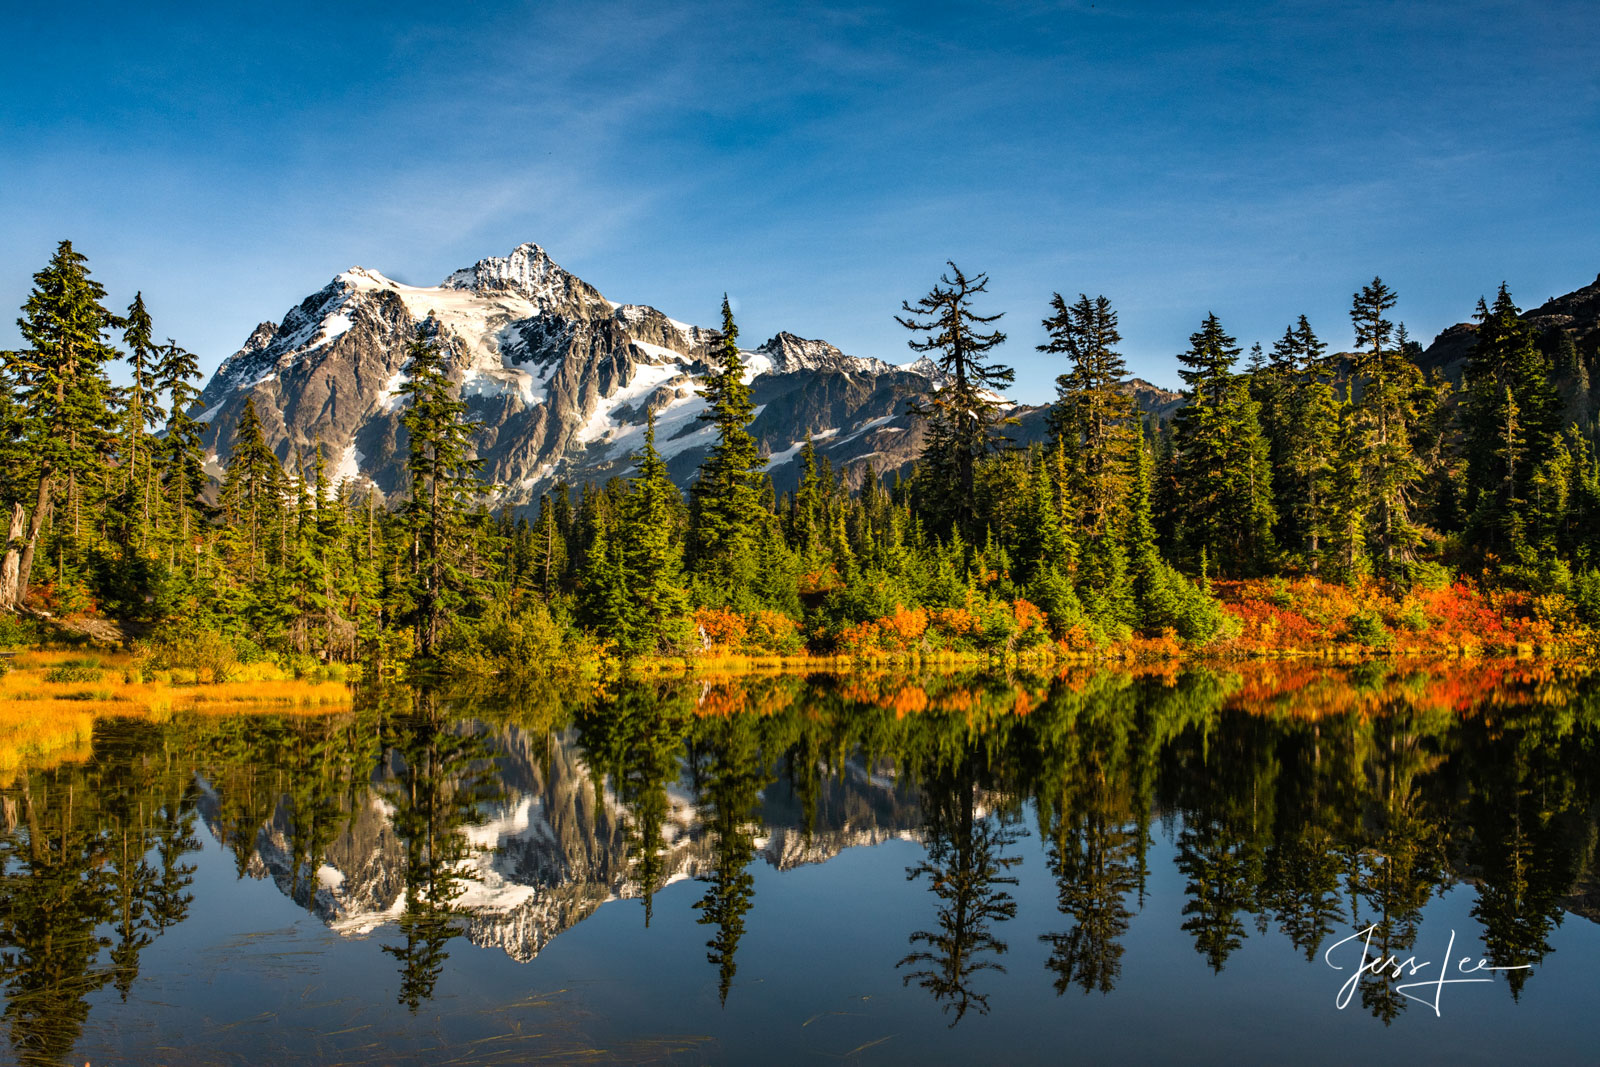 mountain photography, washington, best landscape, Large format, quality, museum, fine art, print, , jess lee, artist, western, cowboy, photographer, limited edition, high quality, high resolution, bea, photo